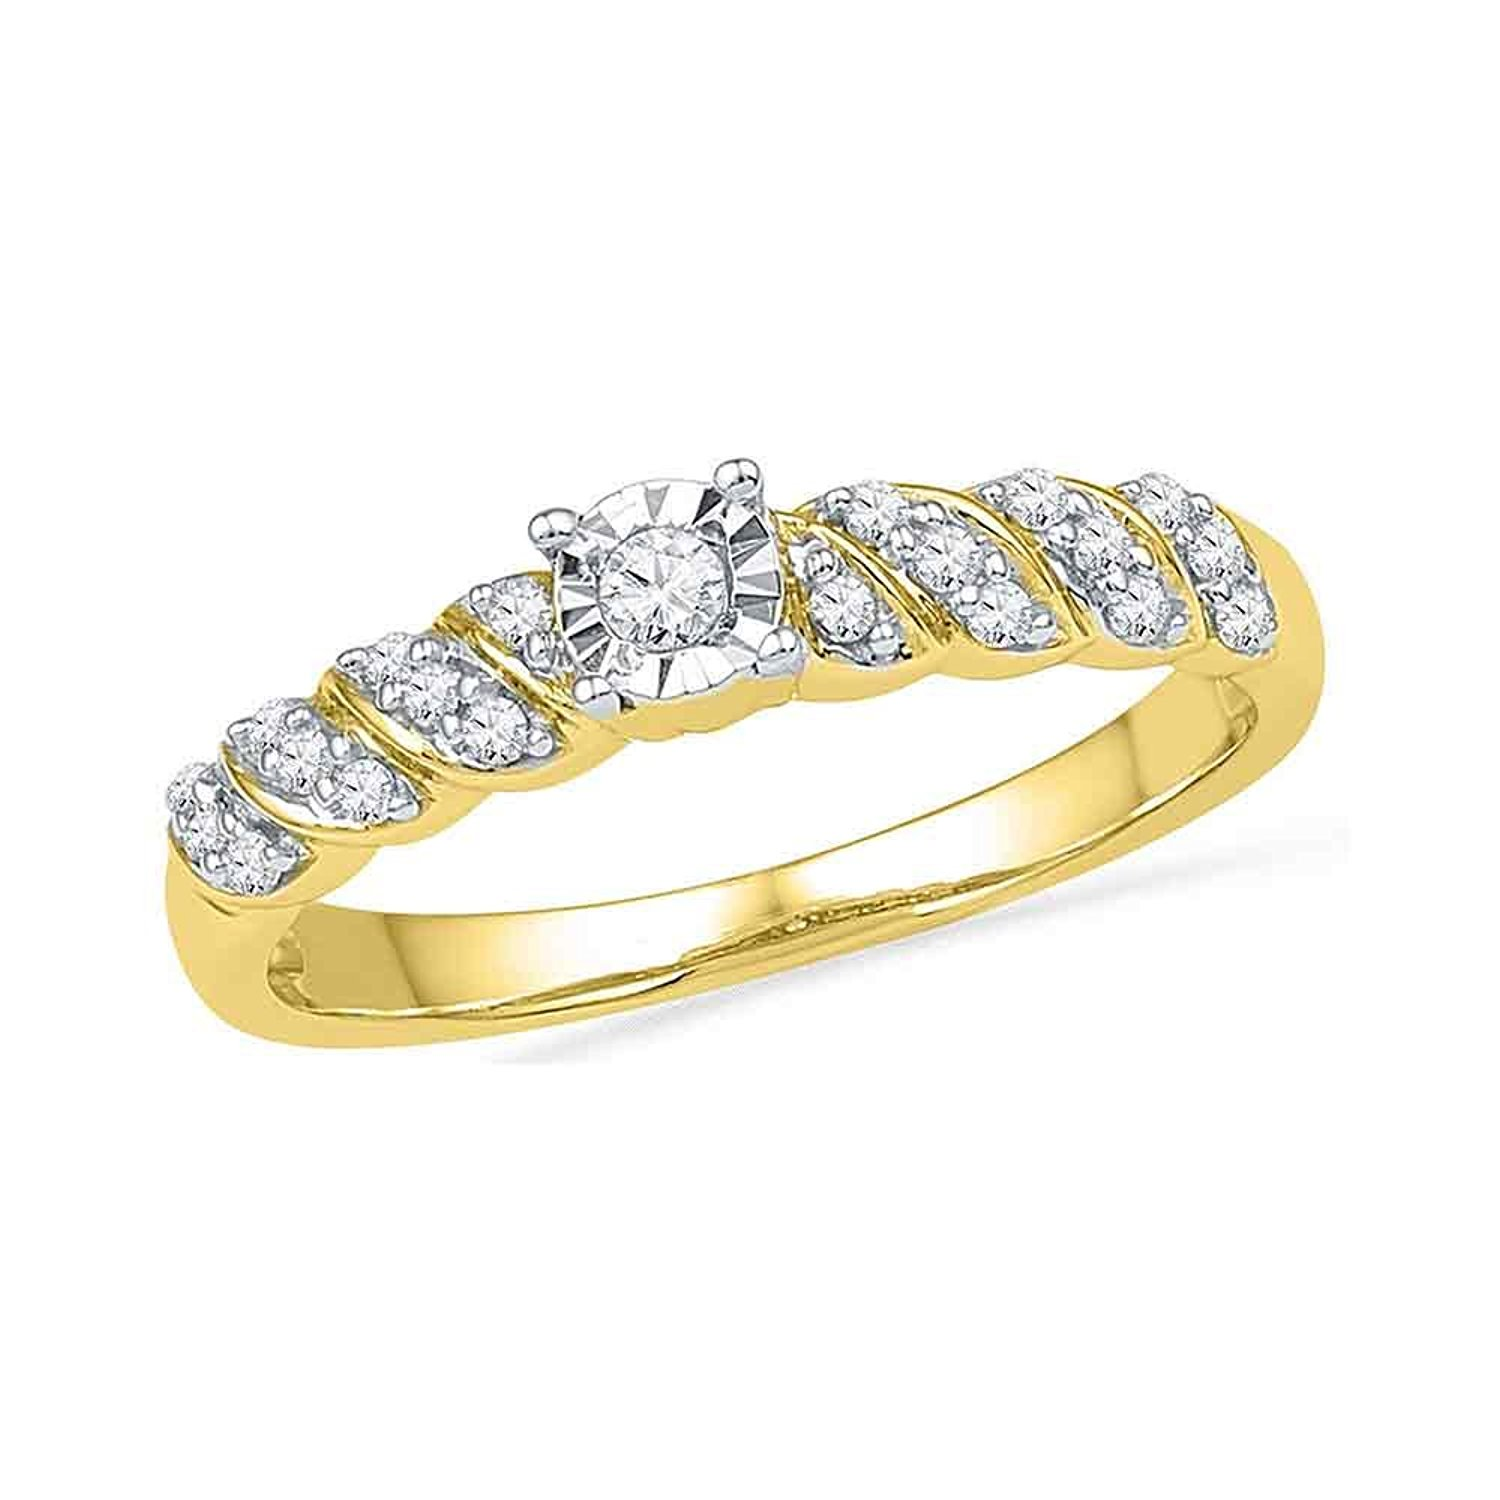 25e3cb8f58 Get Quotations · Round Diamond Promise Ring Solid 10k Yellow Gold  Engagement Band Bridal Fashion Polished Fancy 1/